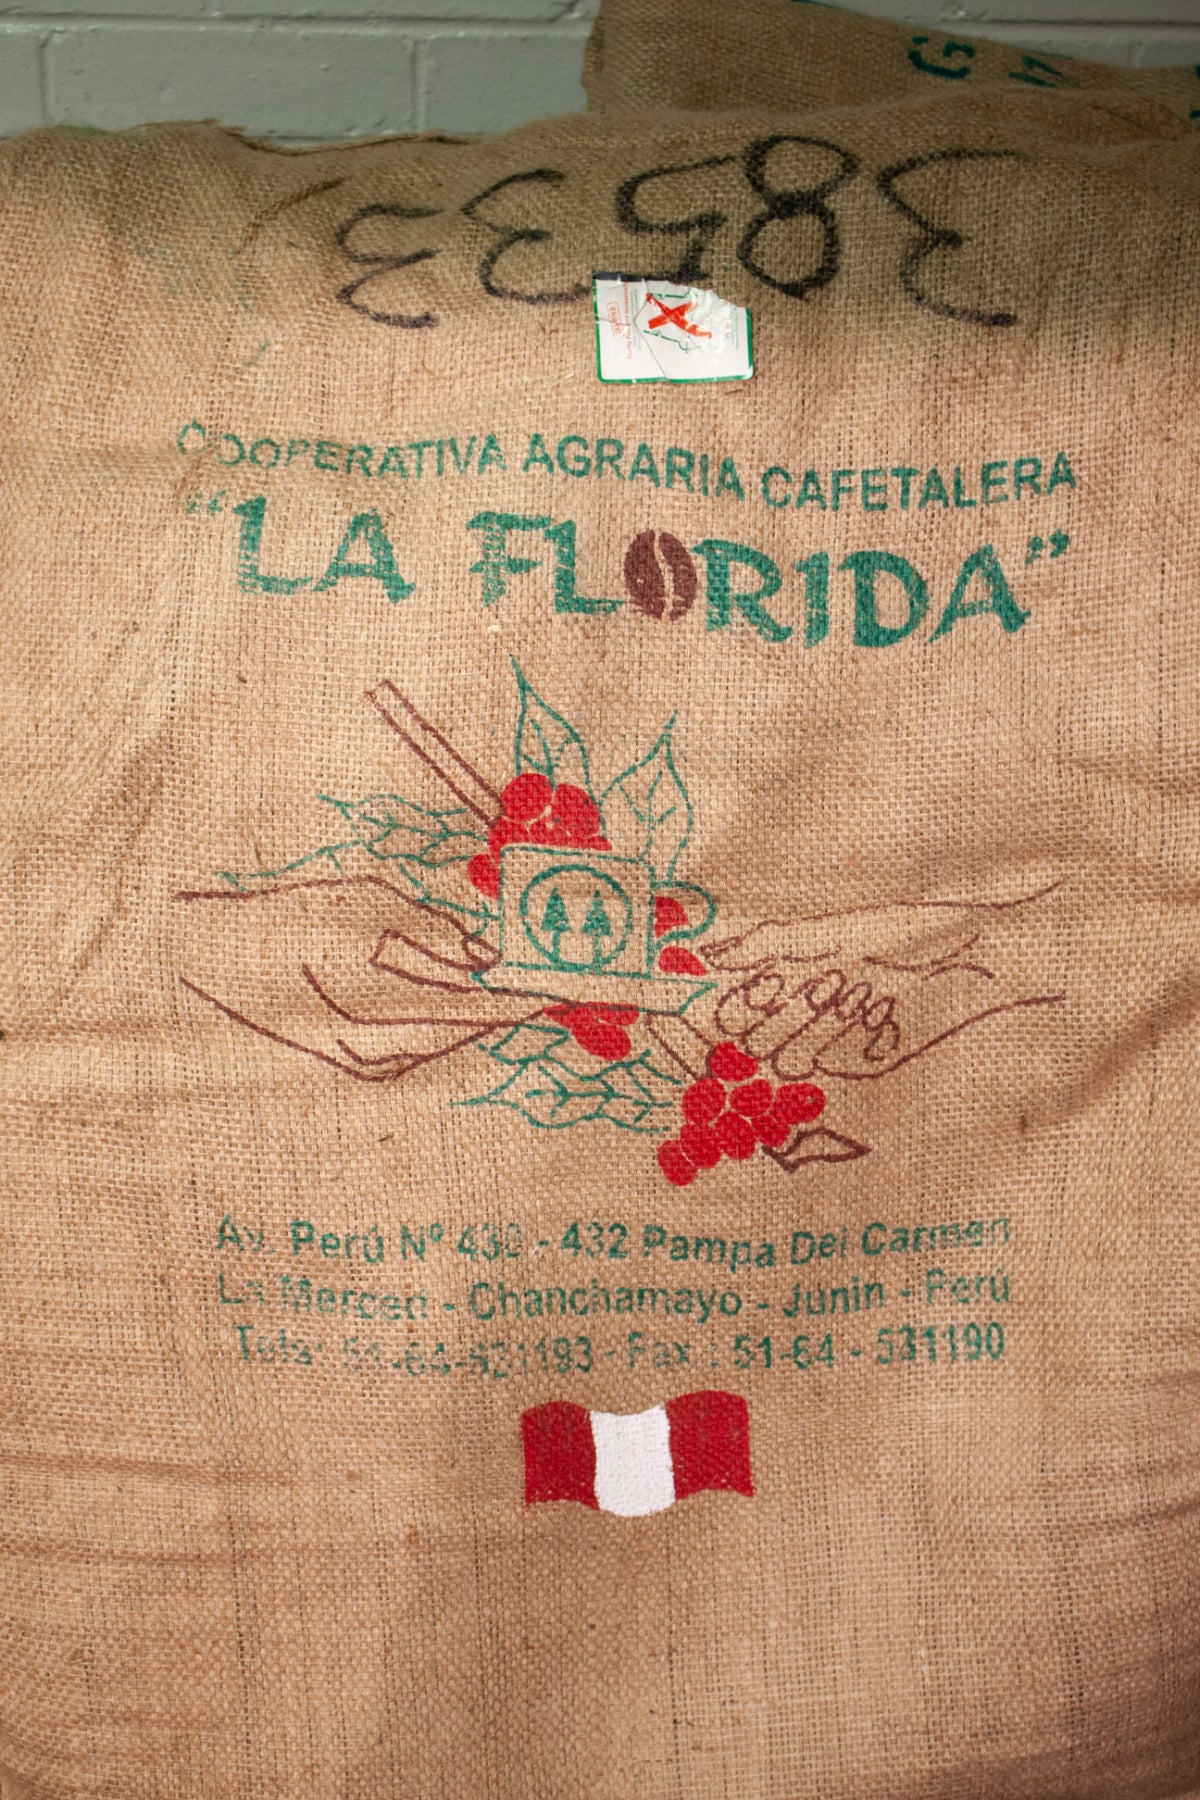 Peru la Florida unroasted beans bag